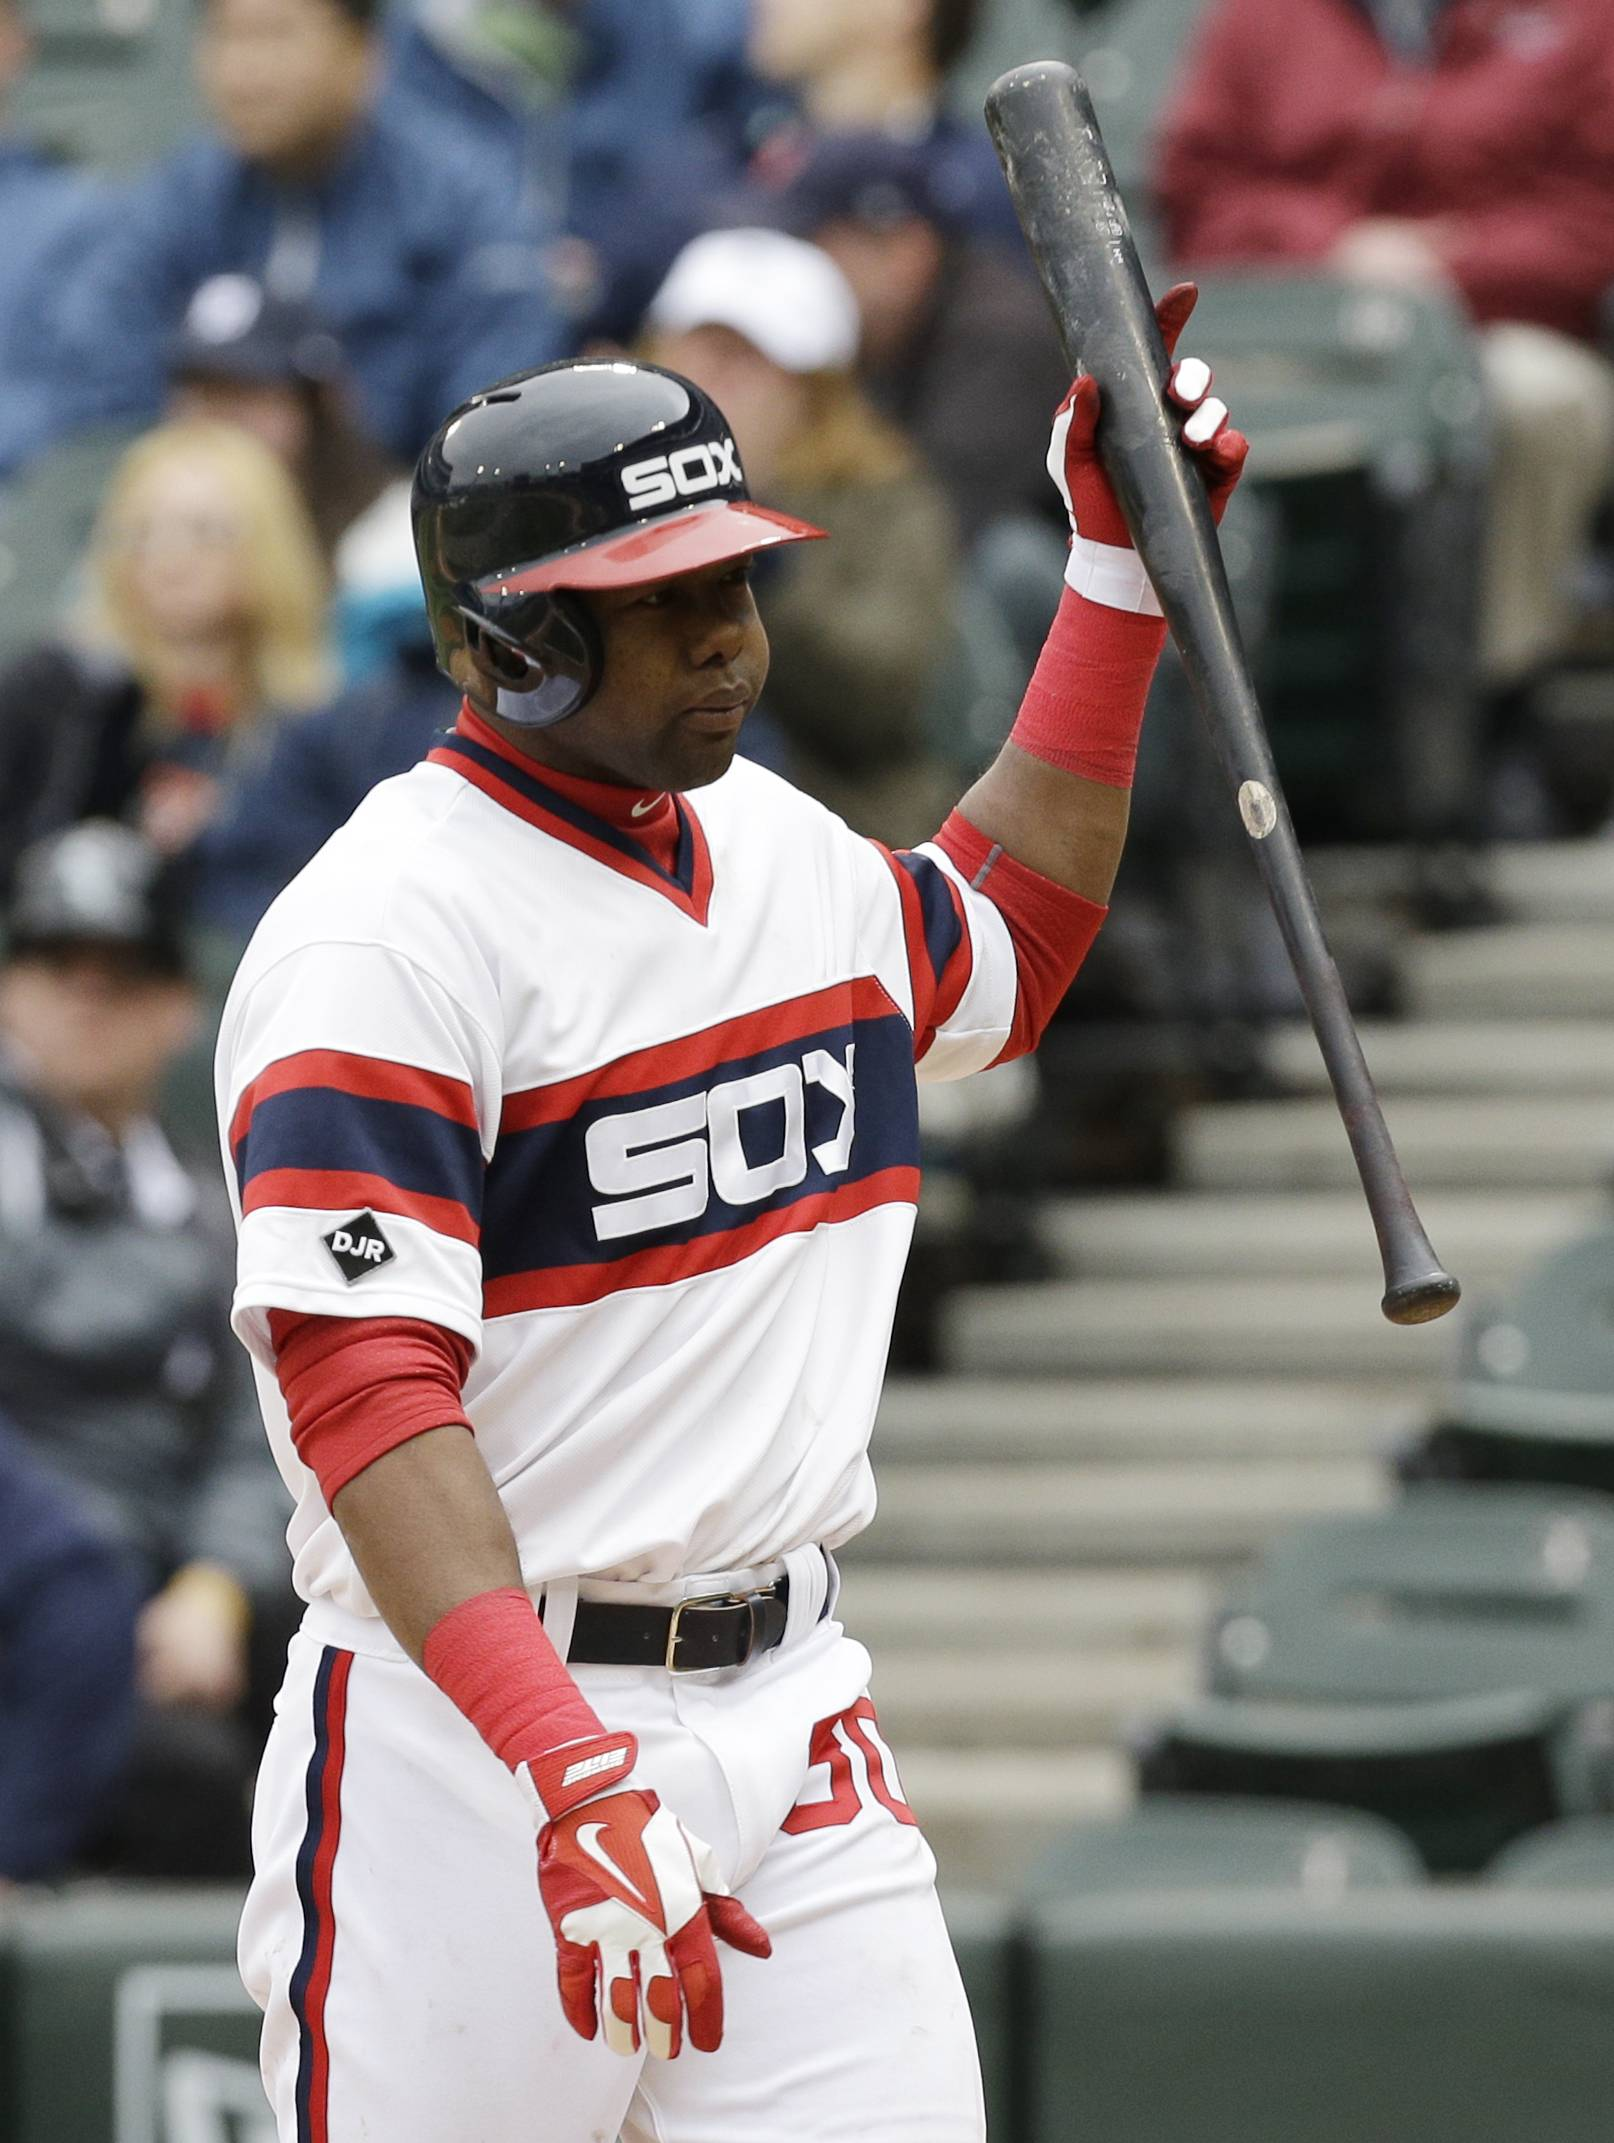 Chicago White Sox's Alejandro De Aza walks back to the dugout after striking out during the ninth inning of a baseball game against the Detroit Tigers in Chicago, Wednesday, April 30, 2014. The Tigers won 5-1.